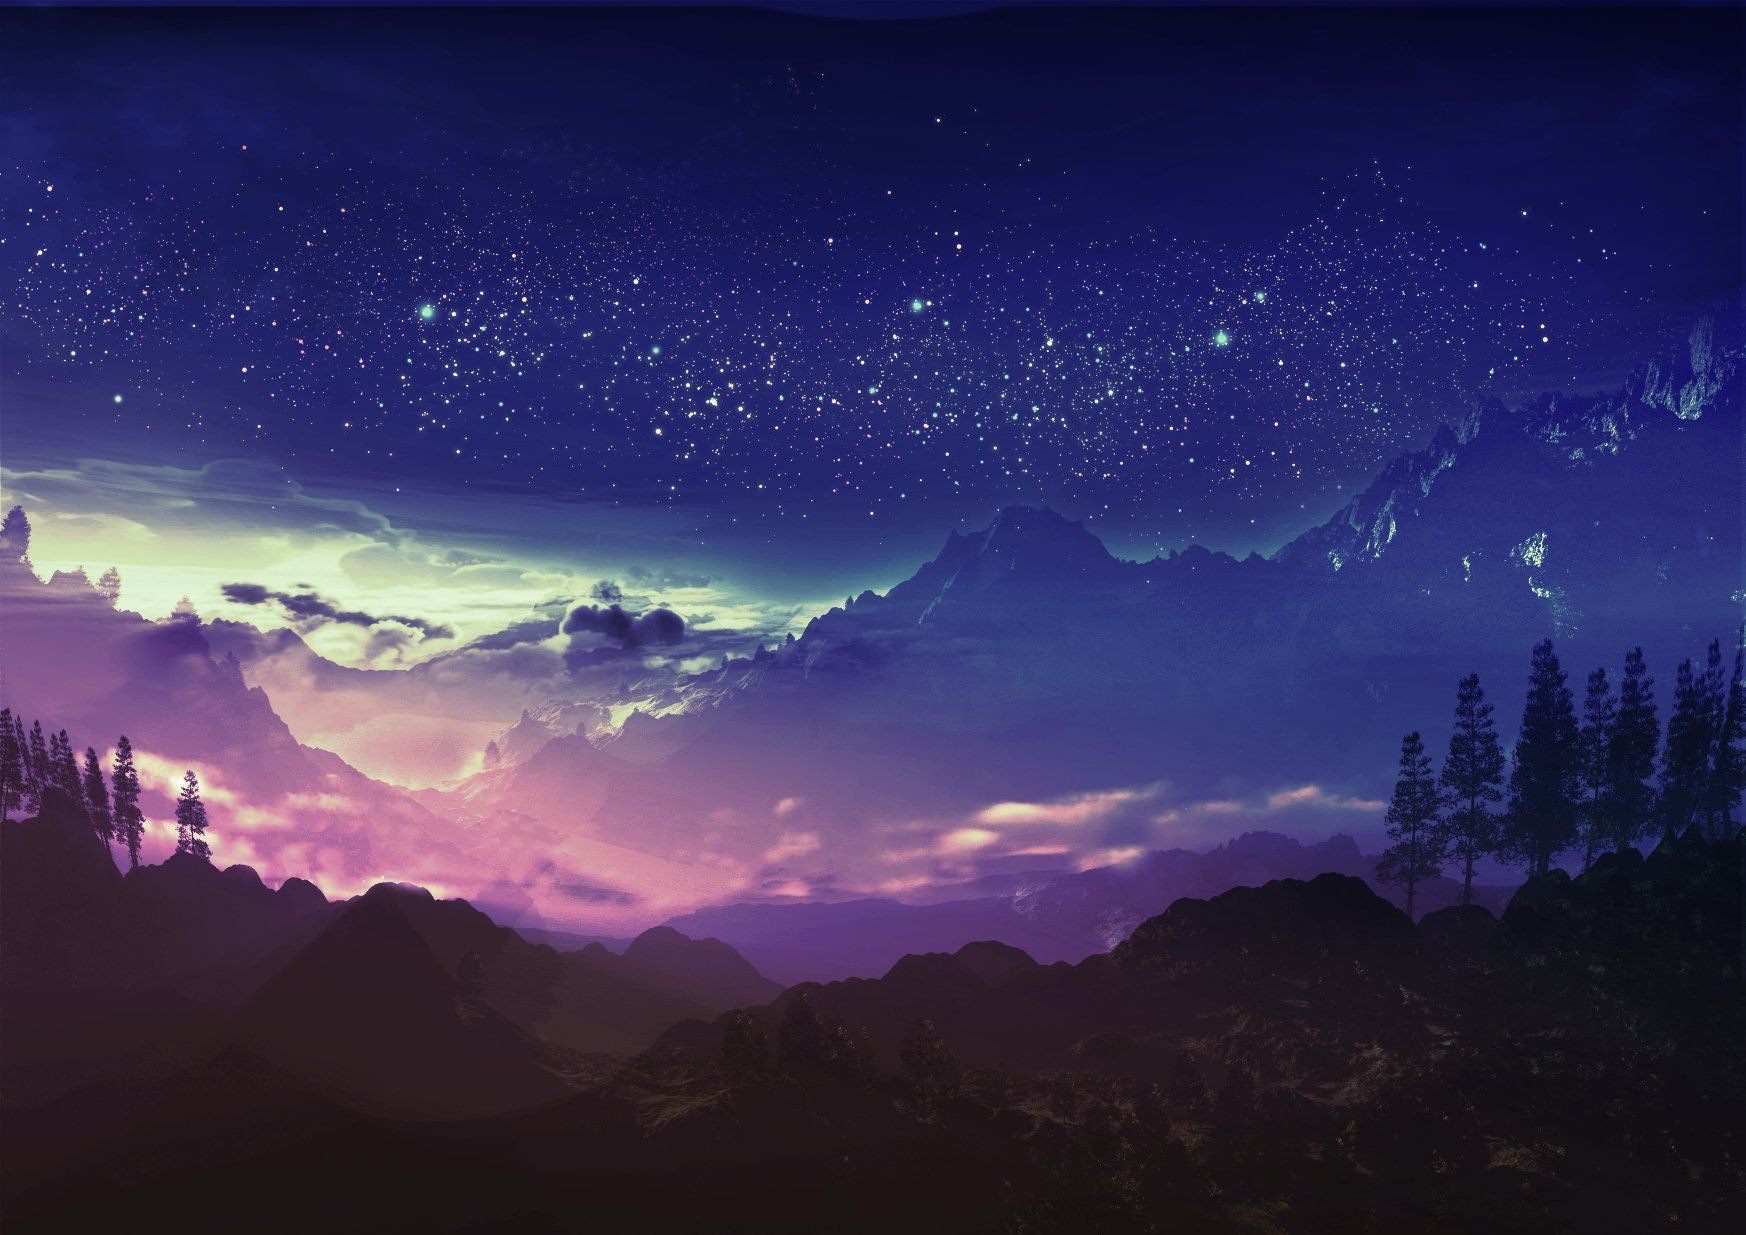 Anime Mountain Wallpapers Top Free Anime Mountain Backgrounds